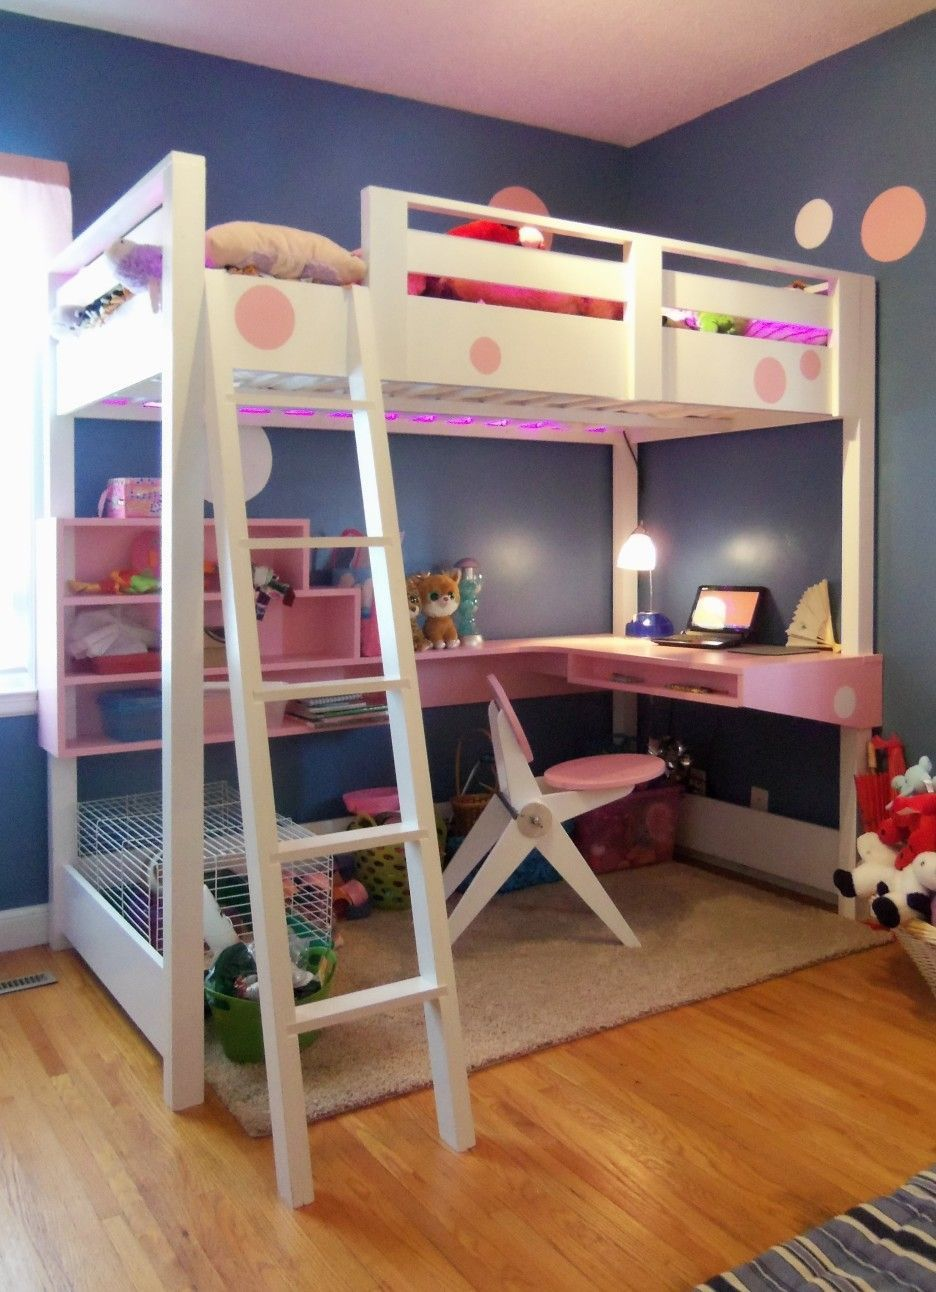 Double loft bed ideas   Best Childrens Beds Single  Double With Storage And Desk for